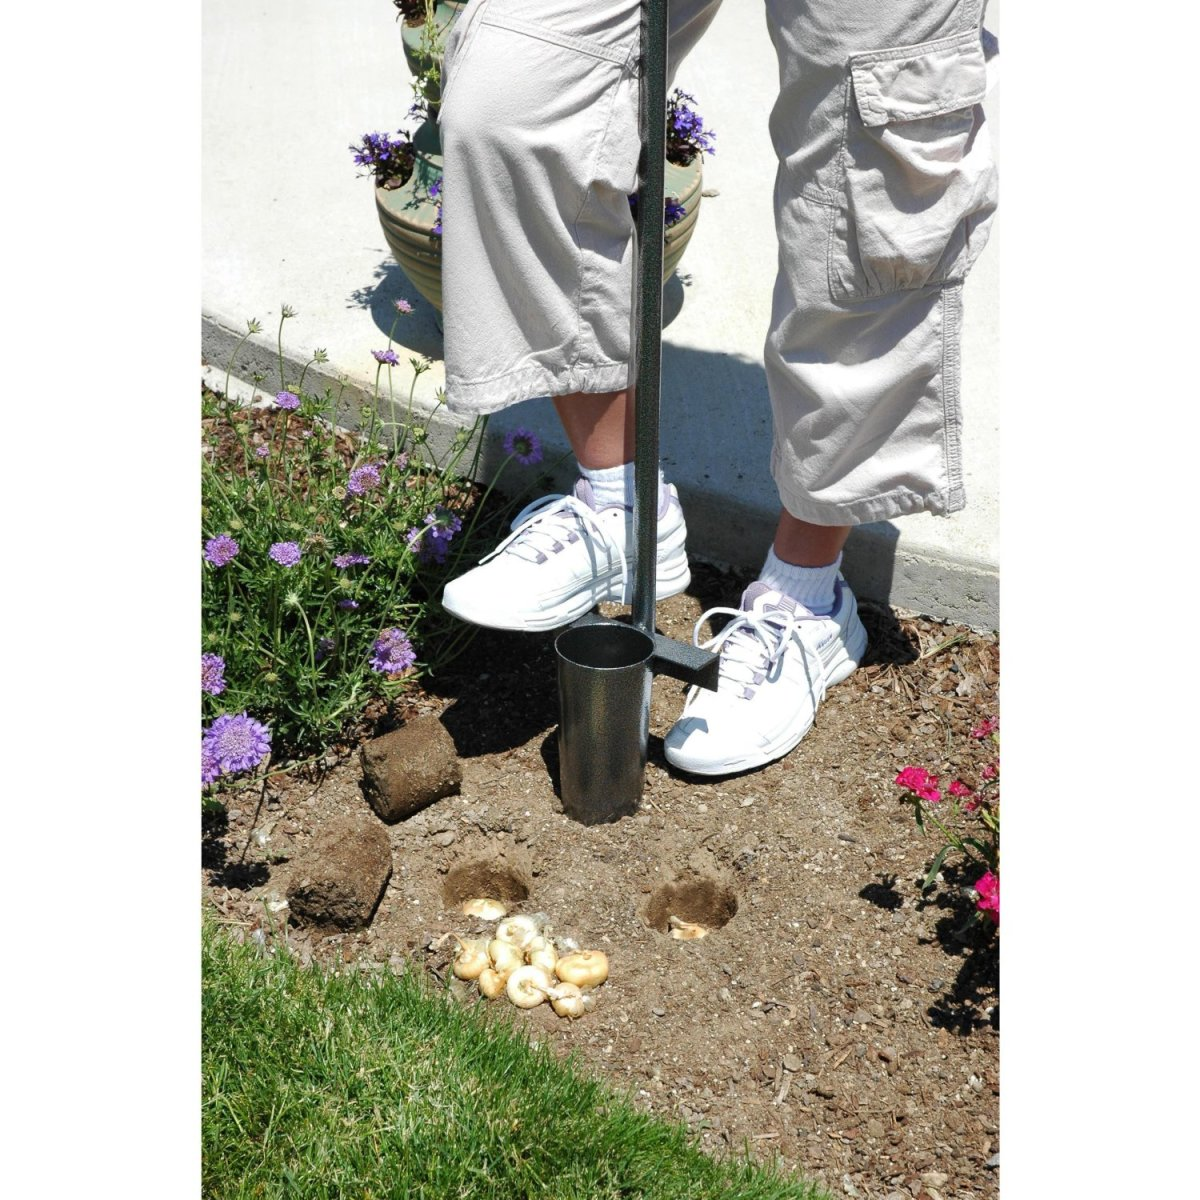 Make planting bulbs easy with the Yard Butler BPL 6 foot Bulb Planter available from Amazon.